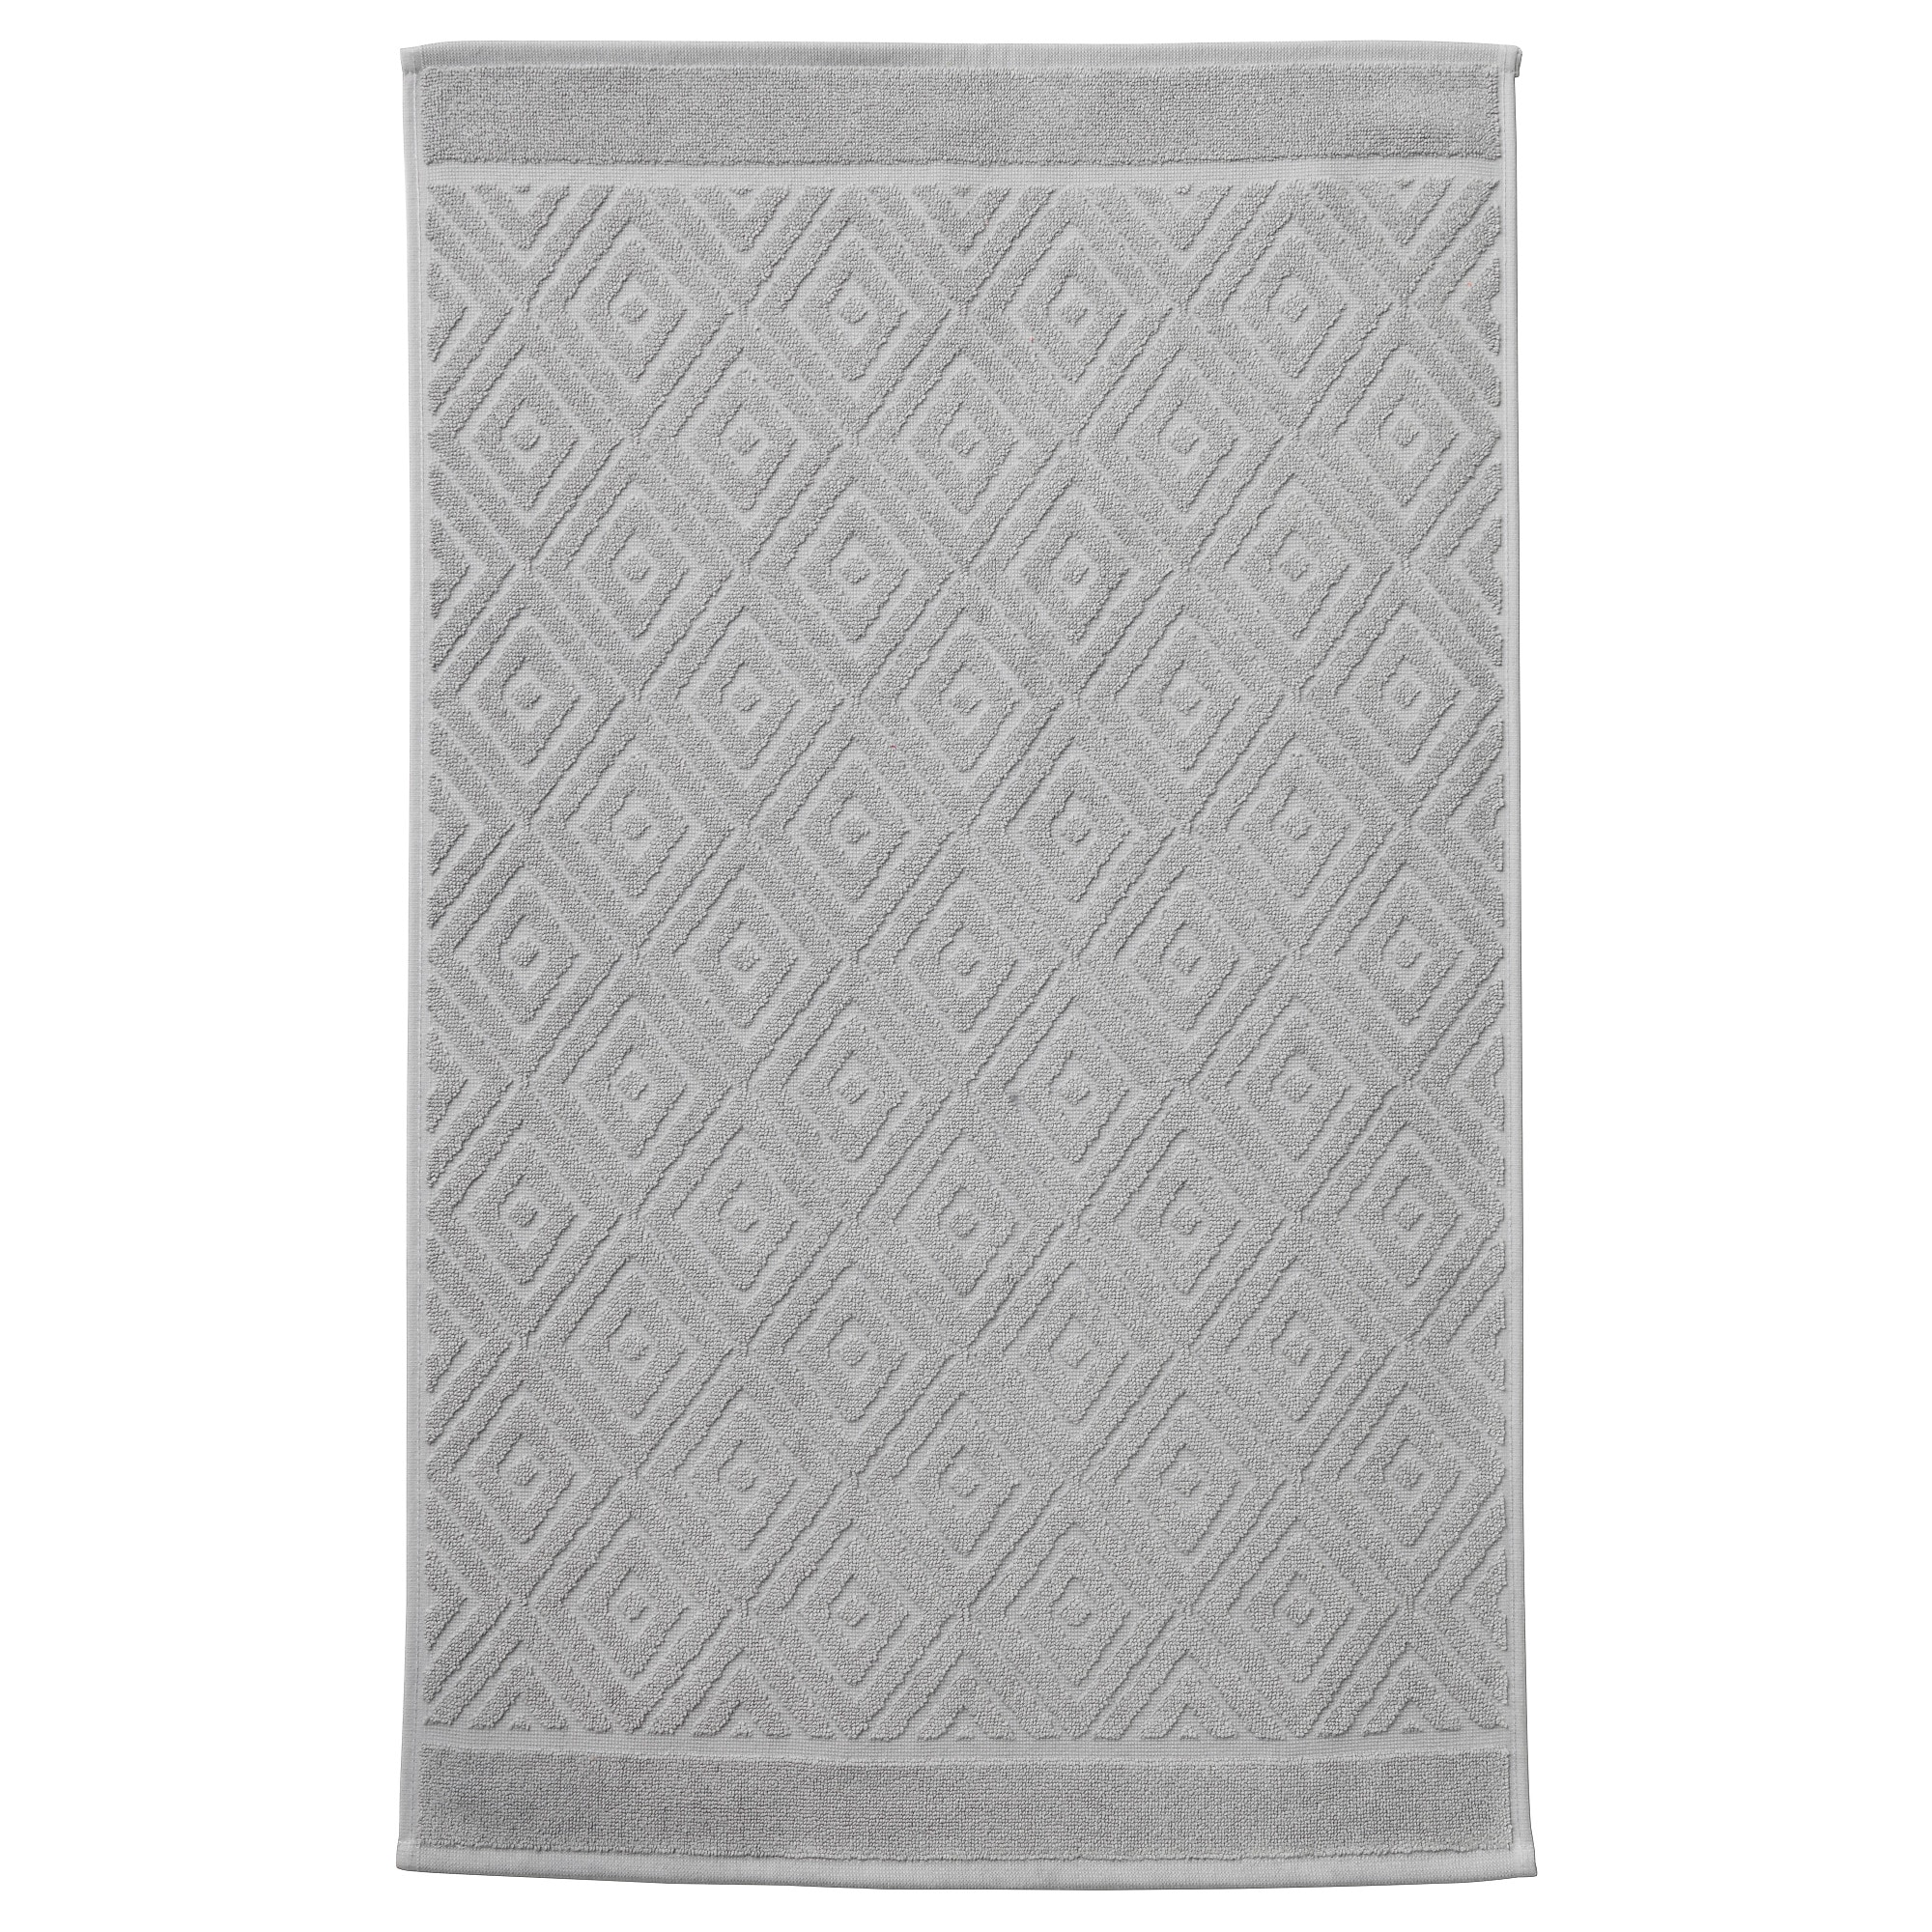 Bathroom Rugs Bath Mats IKEA - Rubber backed bath mats for bathroom decorating ideas